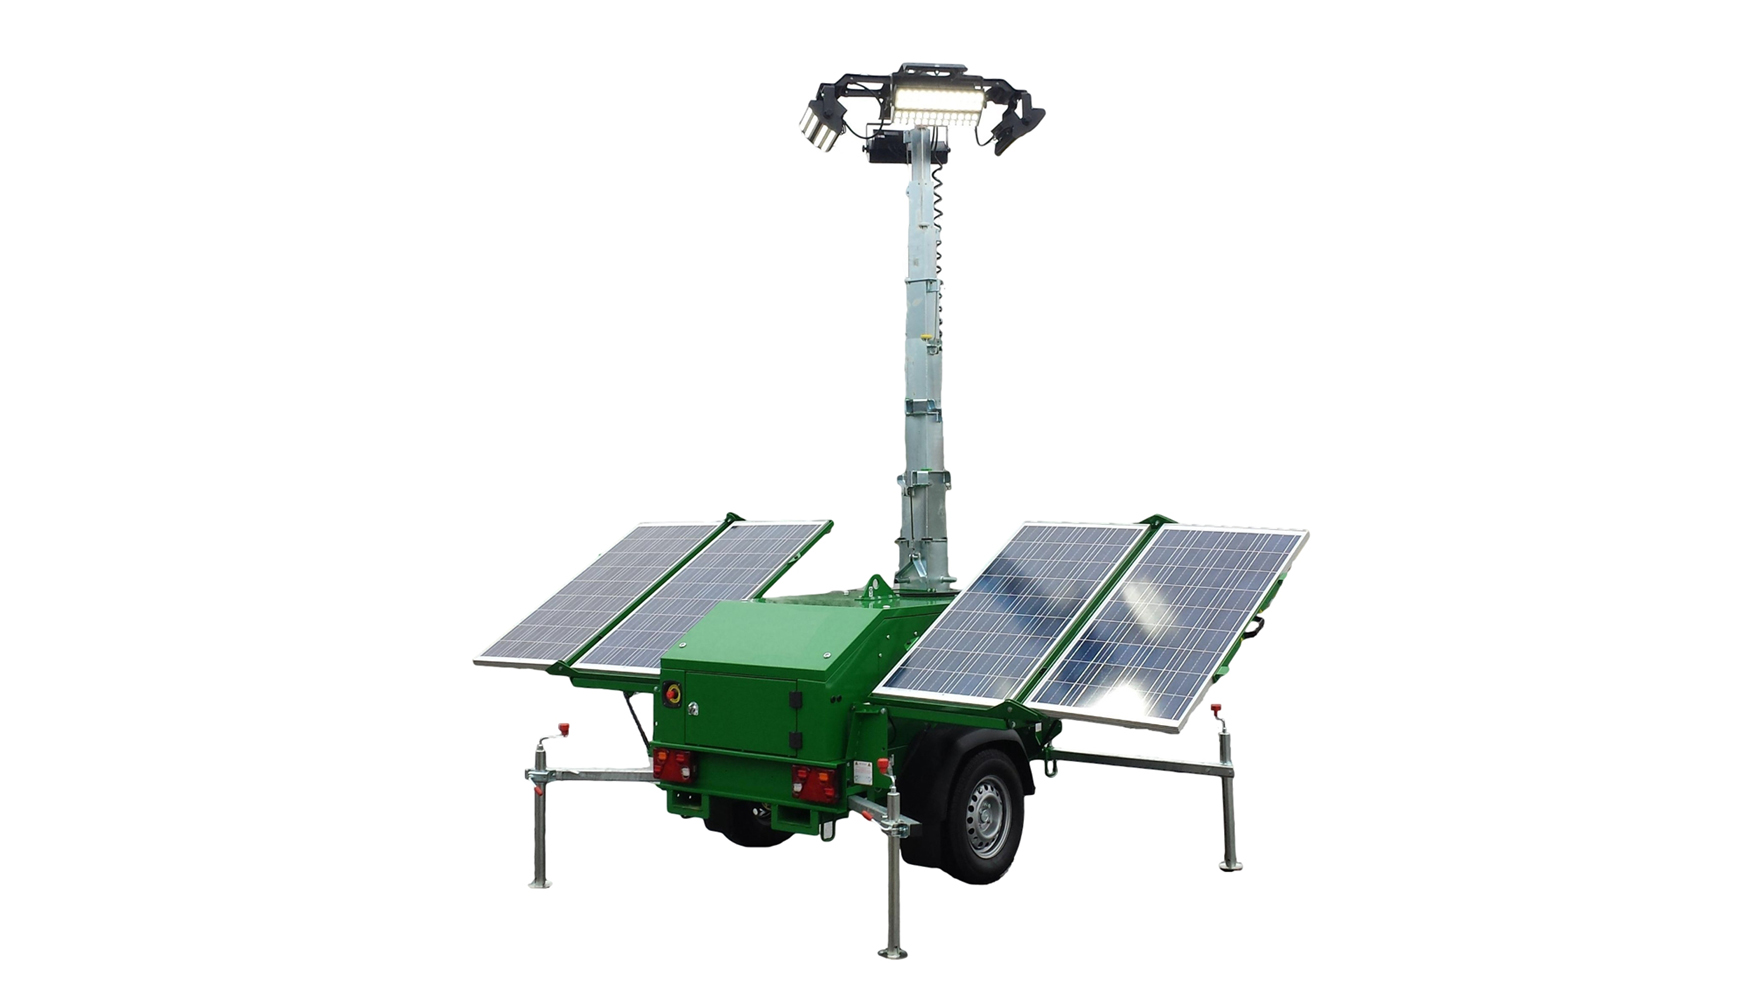 Morris_Machinery_SMC_Solar1.jpg